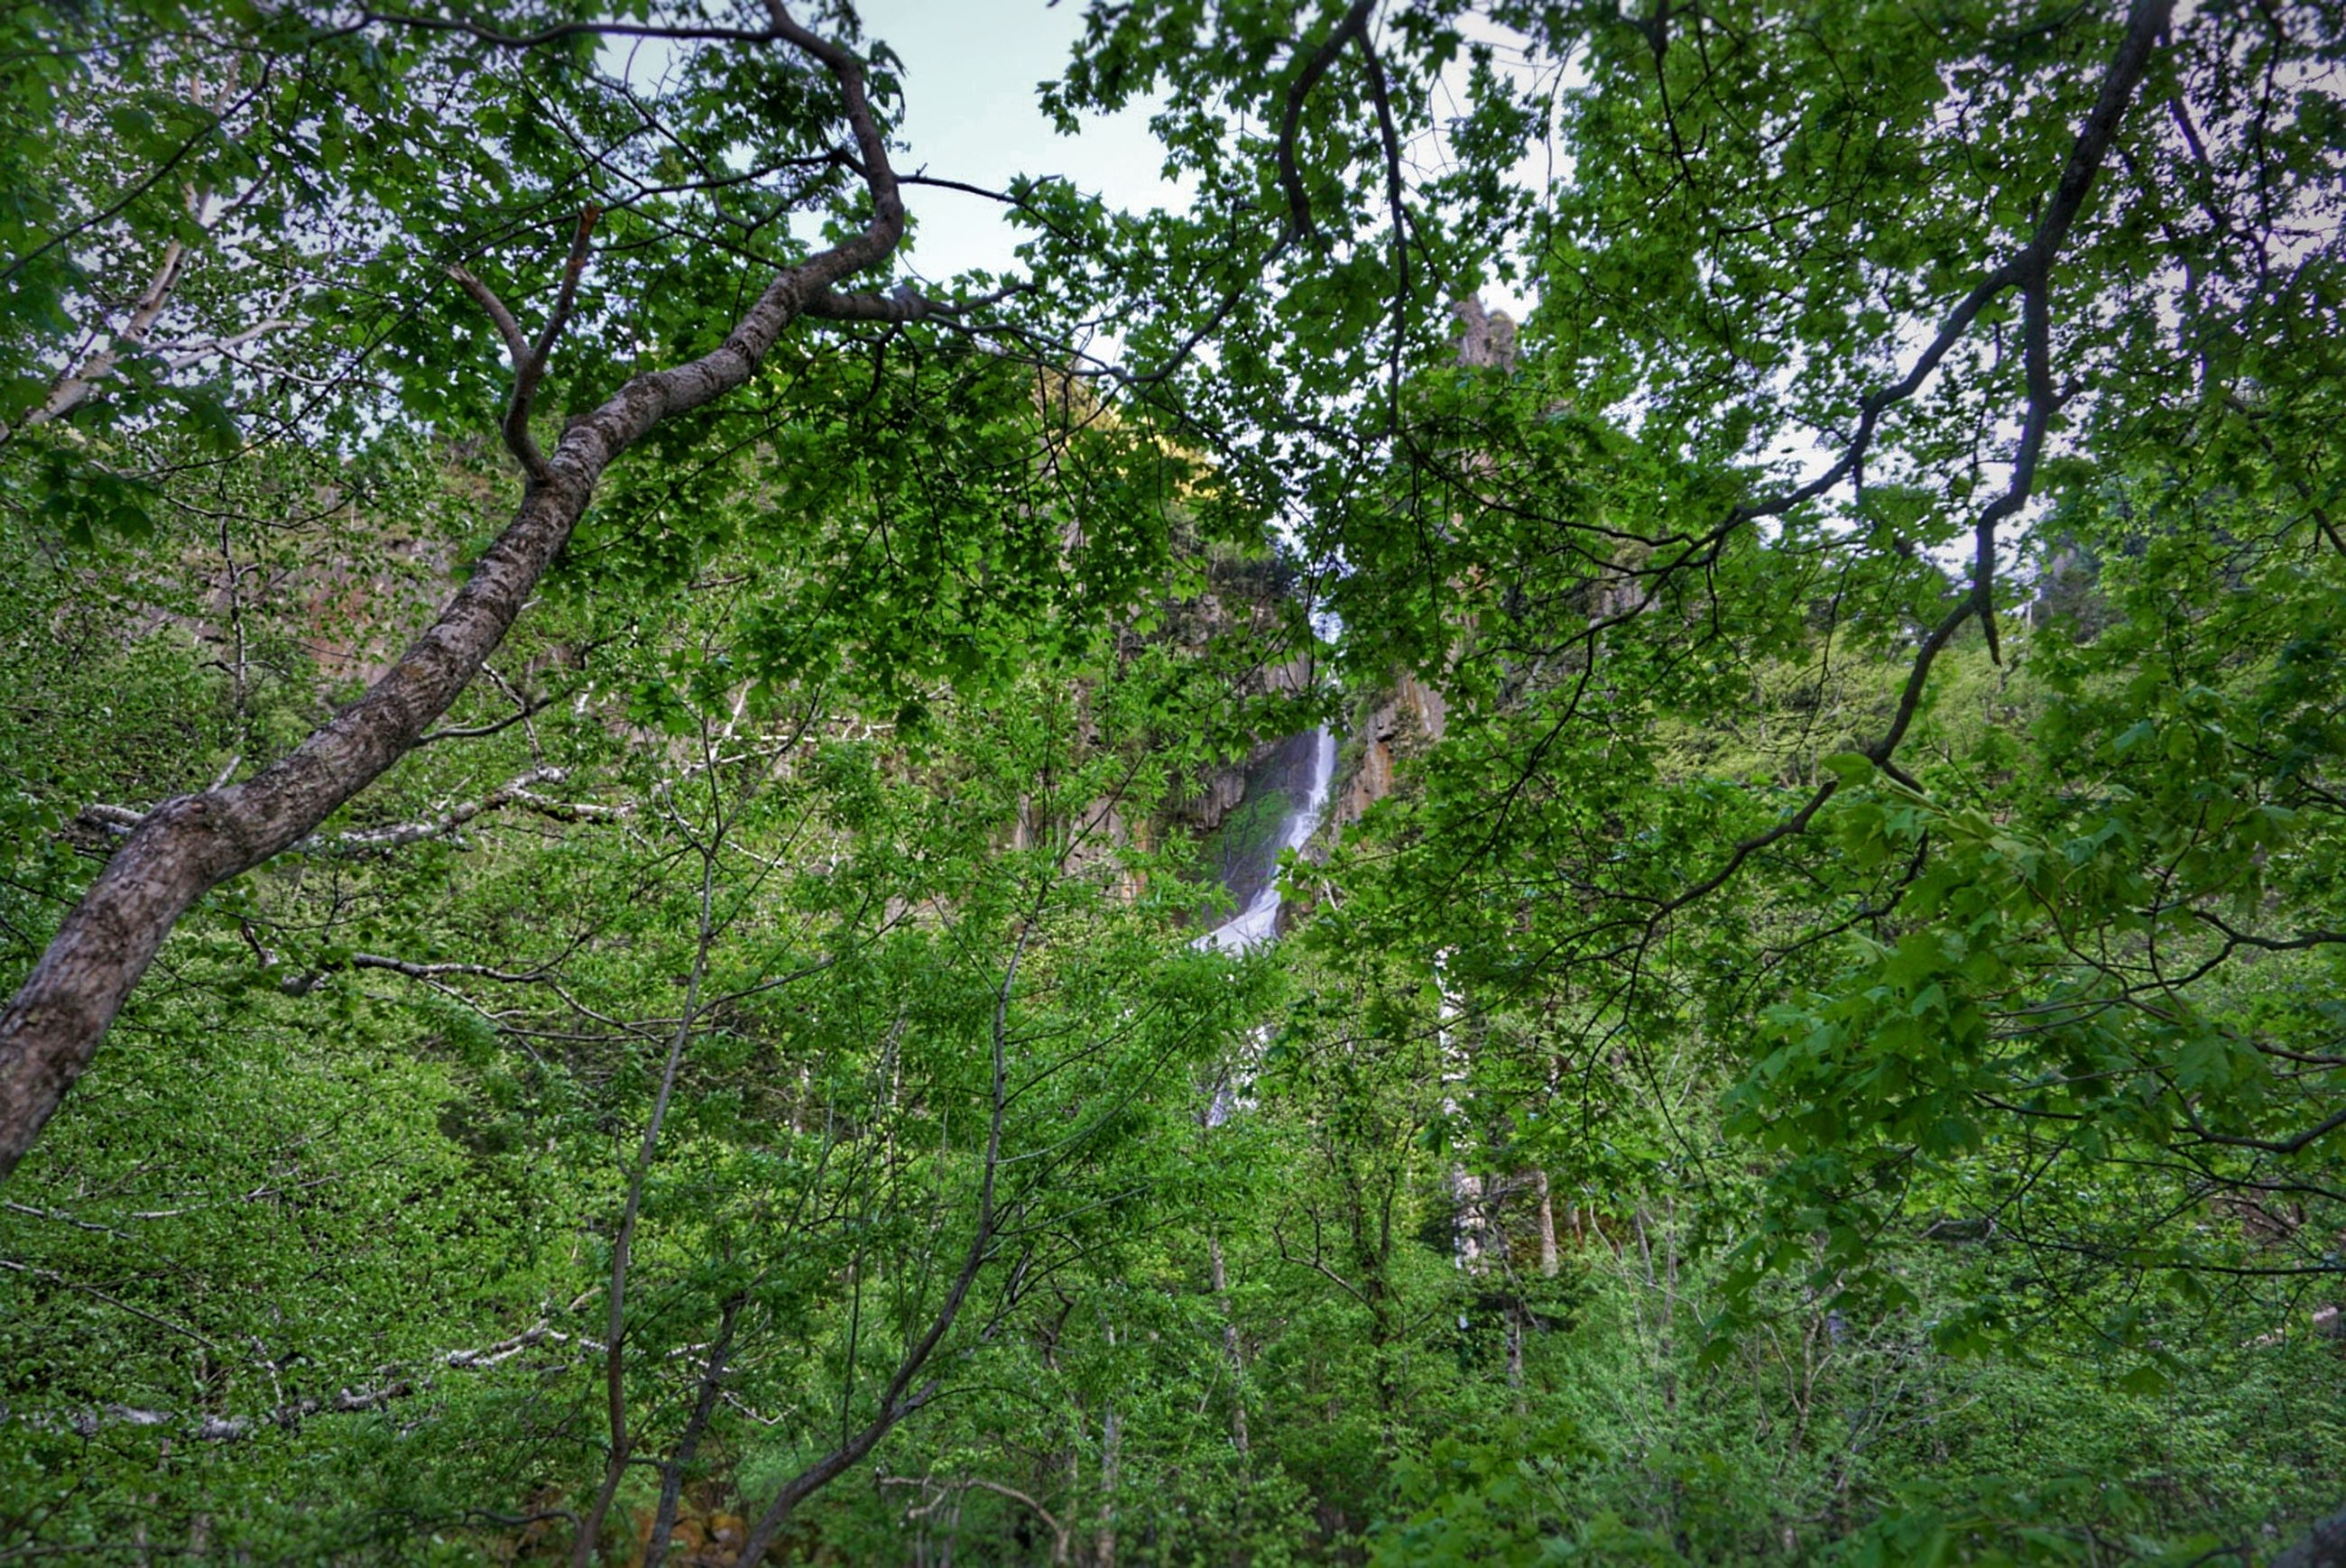 tree, growth, green color, beauty in nature, tranquility, nature, forest, scenics, tranquil scene, lush foliage, water, plant, grass, branch, idyllic, non-urban scene, day, landscape, green, waterfall